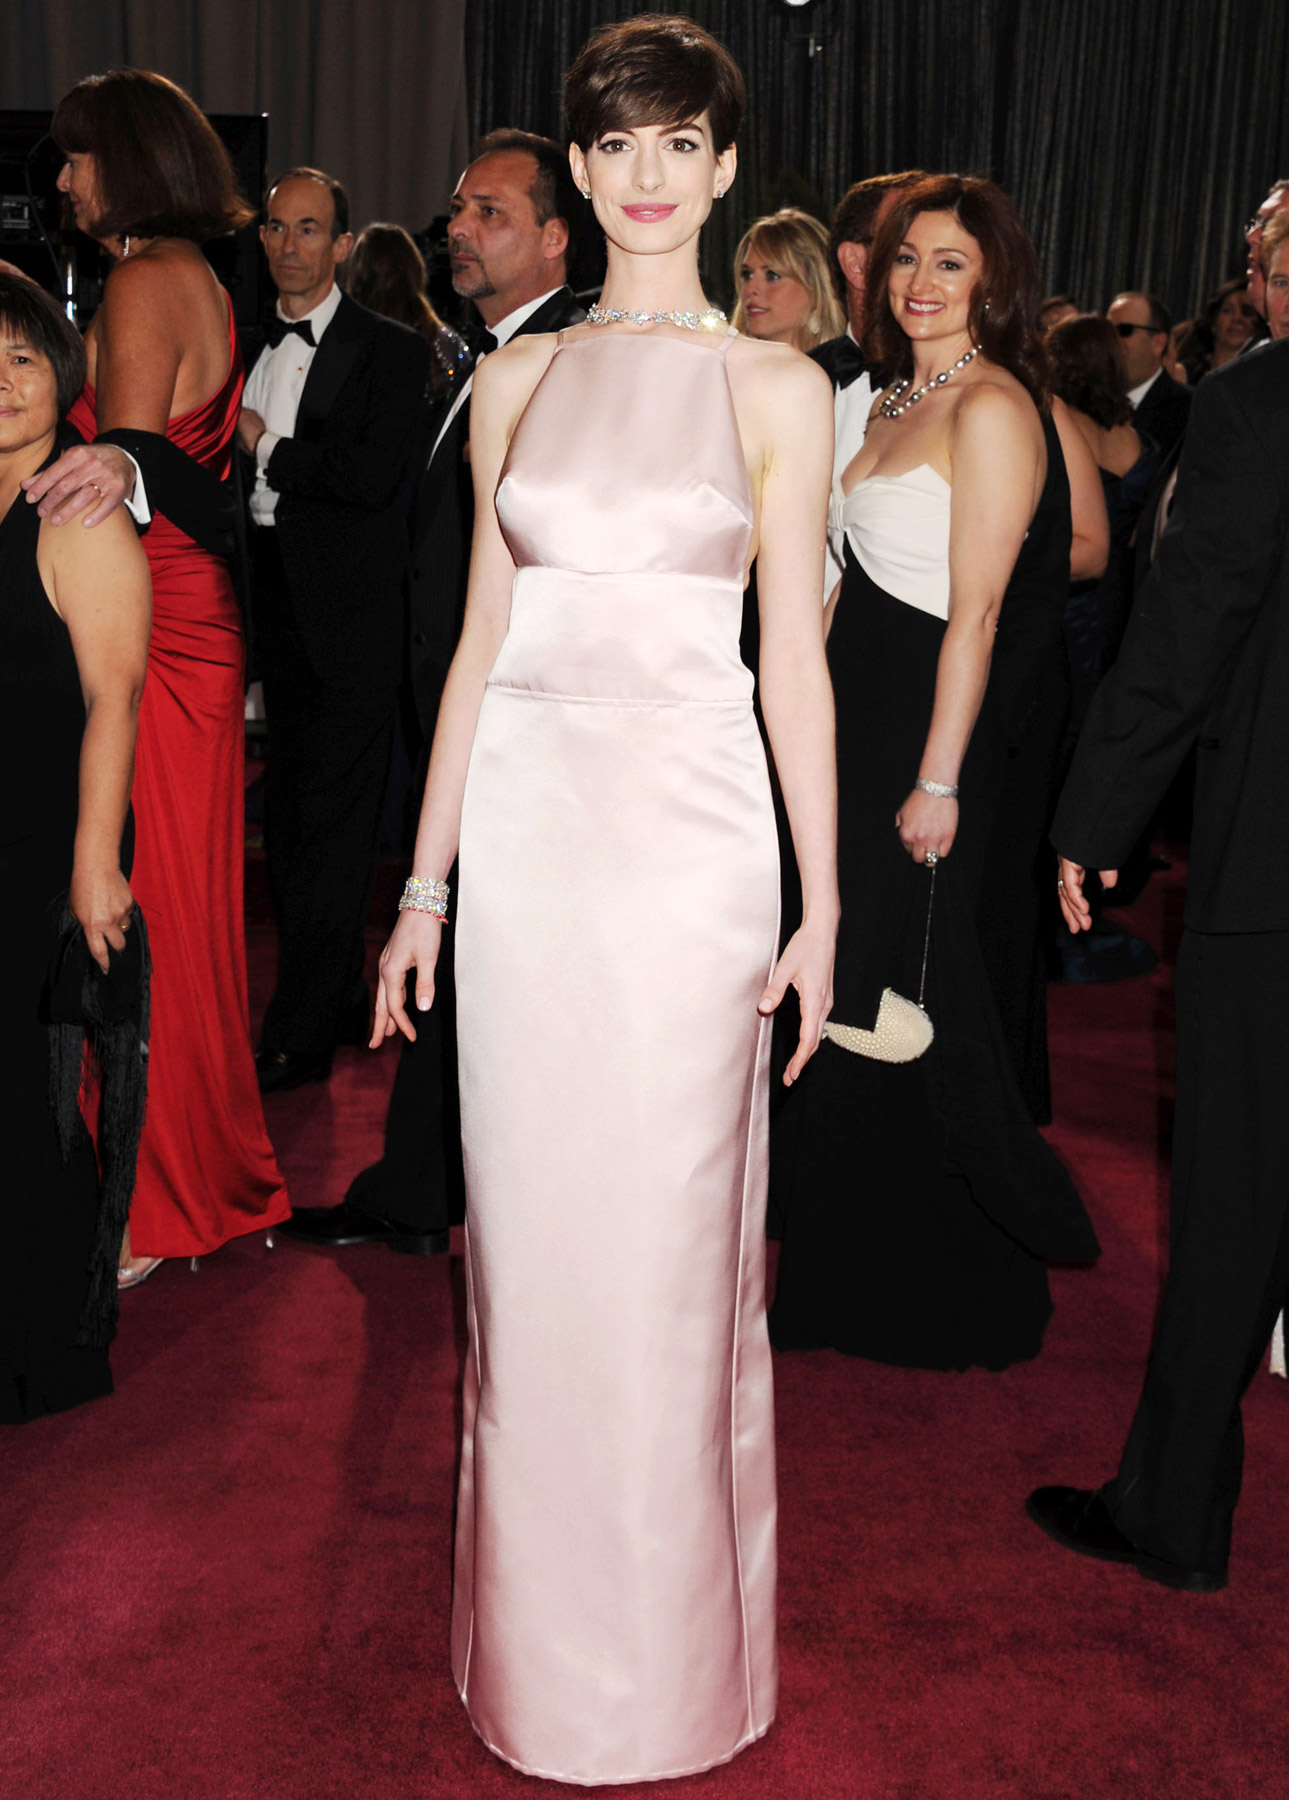 Anne Hathaway Oscars Outfit 2013.jpg